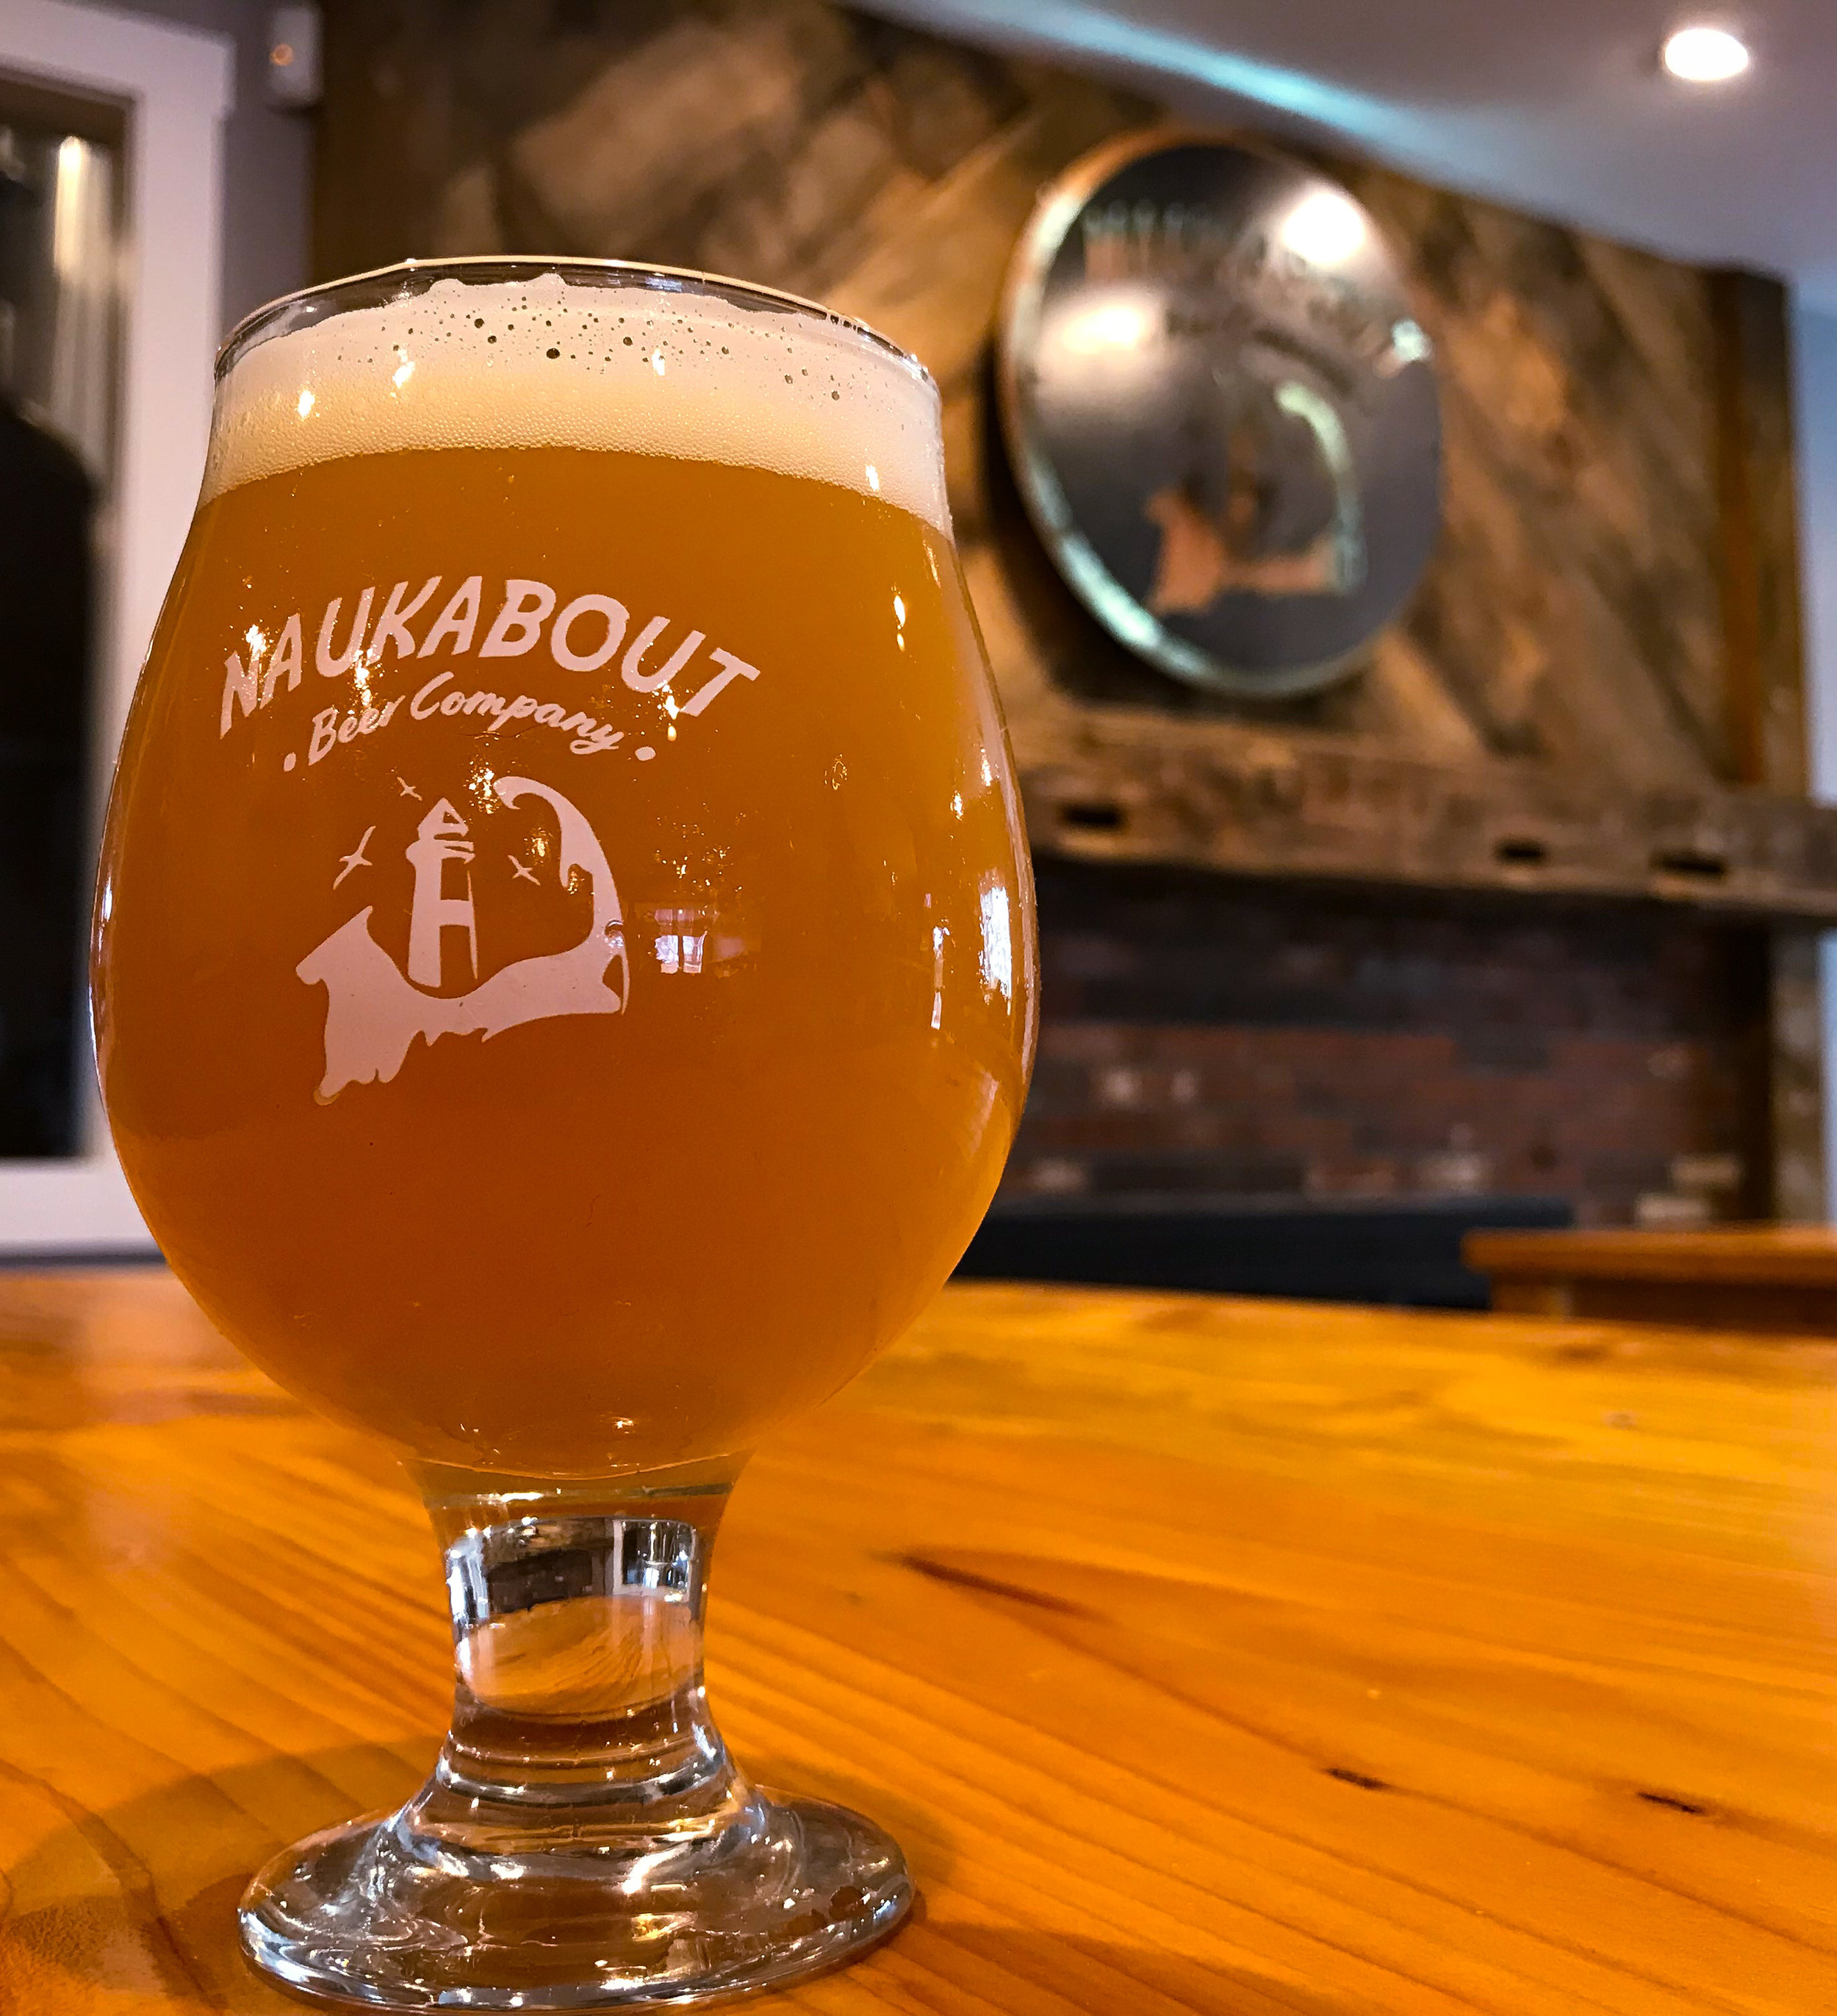 Naukabout Beer Co 1.JPG